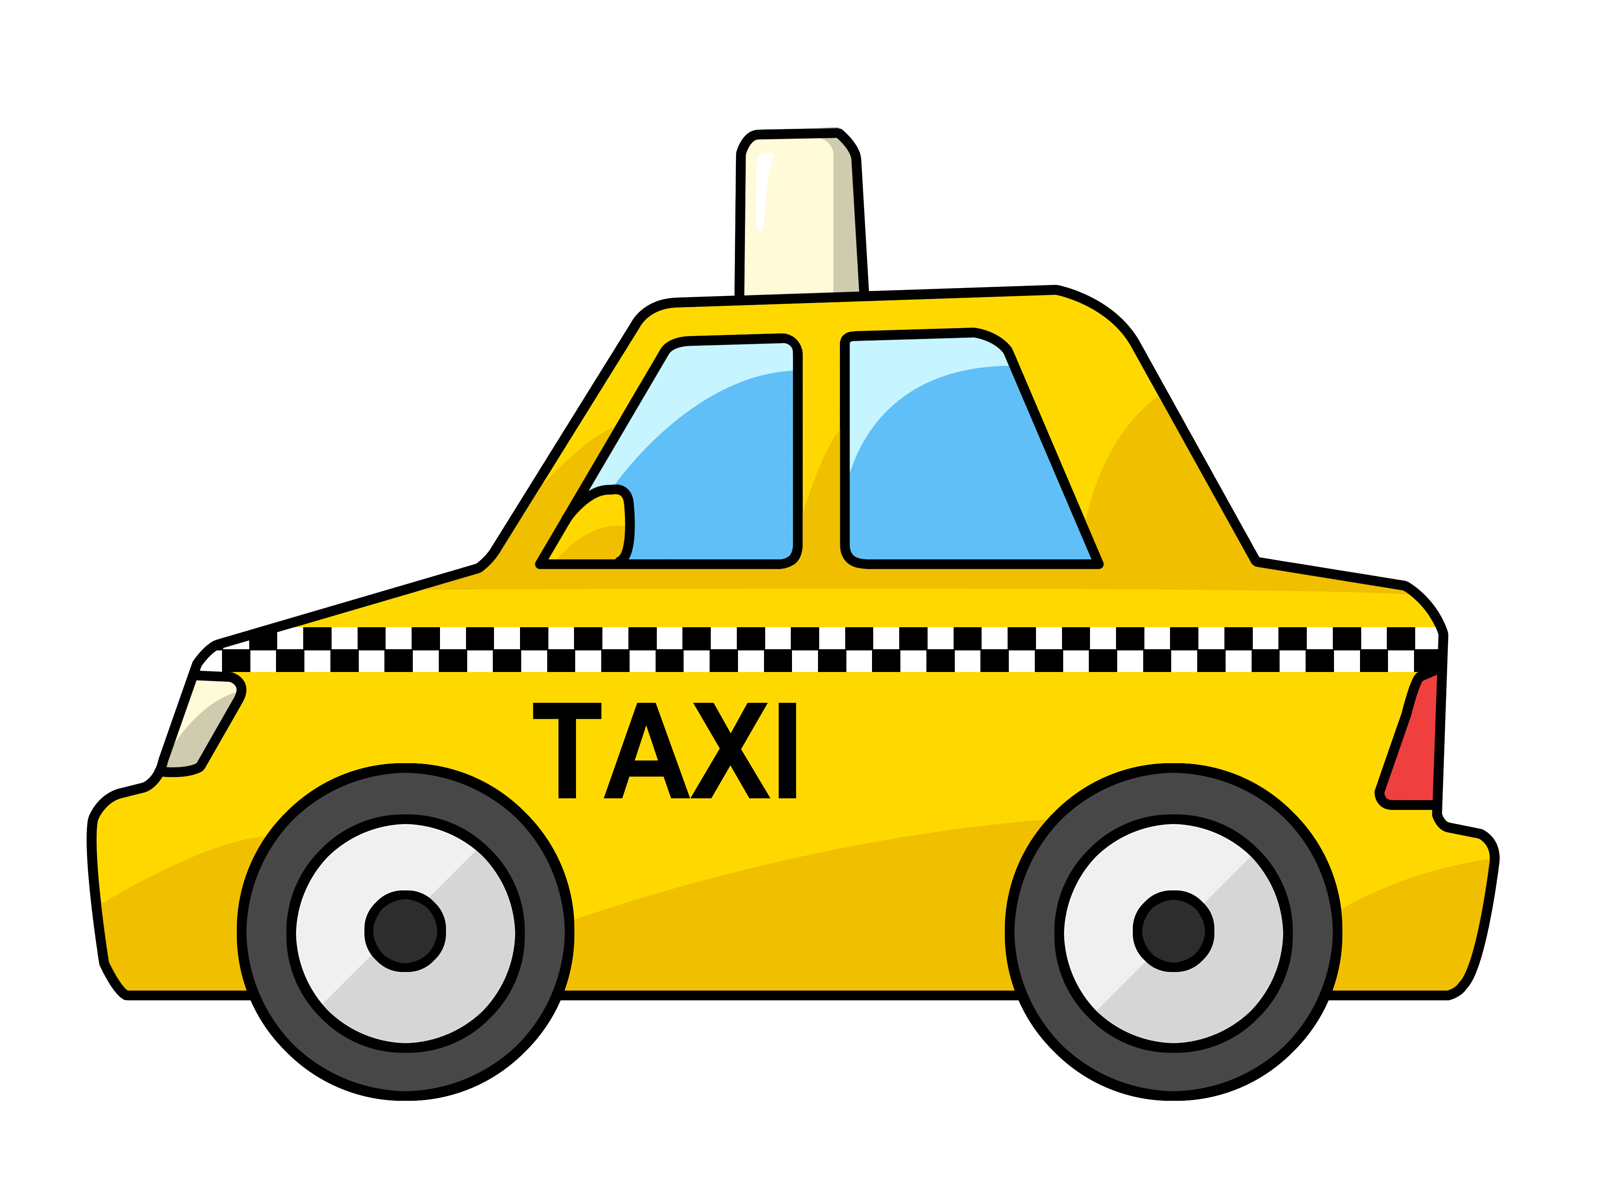 Cab pictures clipart image 59+ Taxi Cab Clipart | ClipartLook image